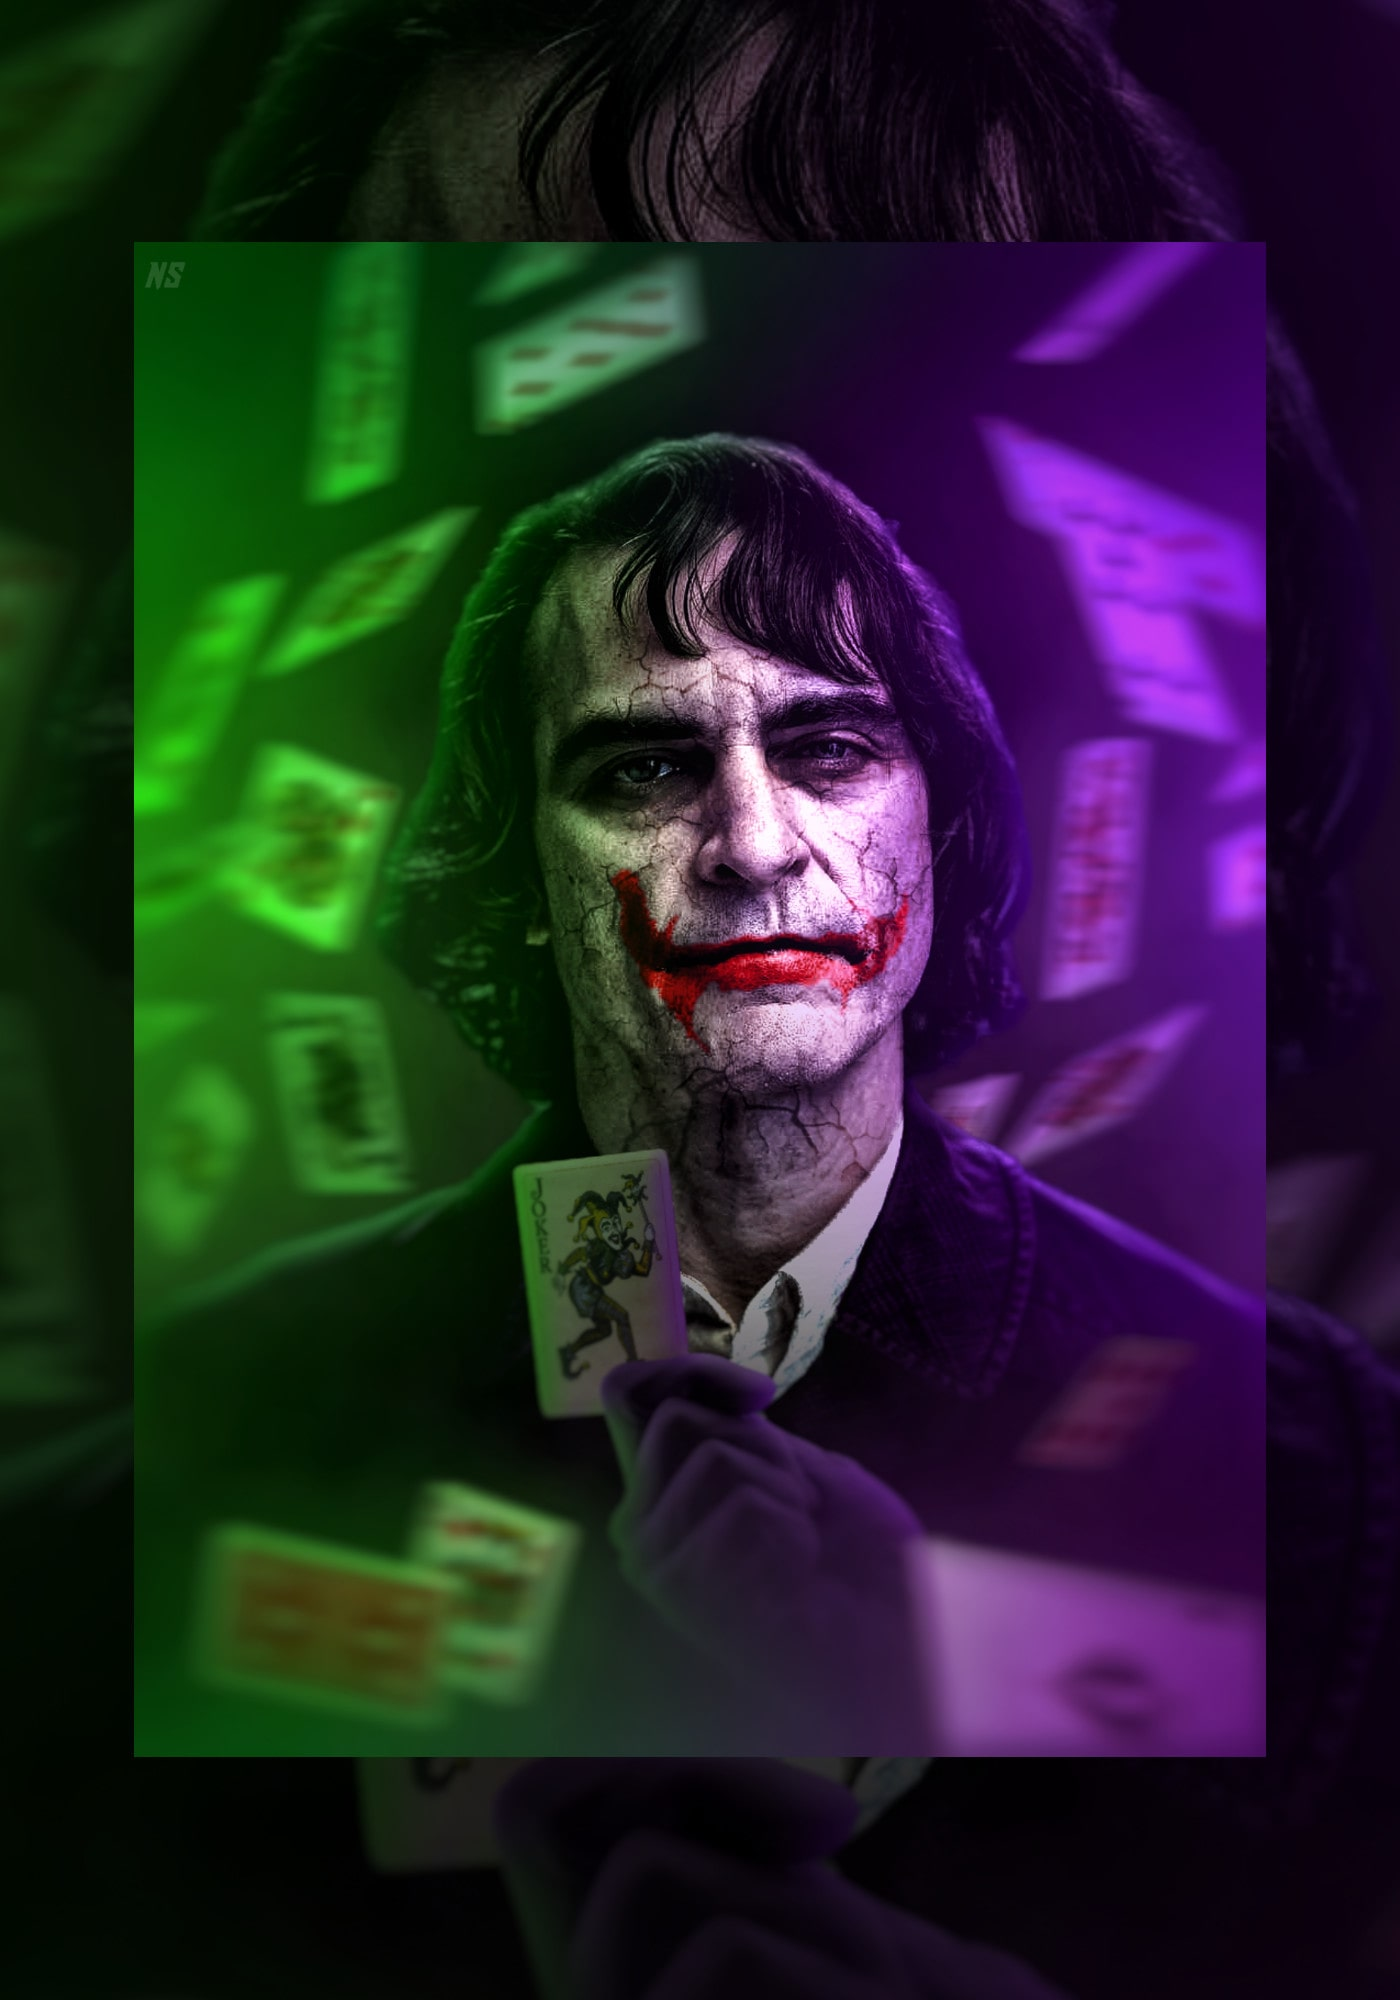 Joker Hd Wallpapers 7wallpapers Net